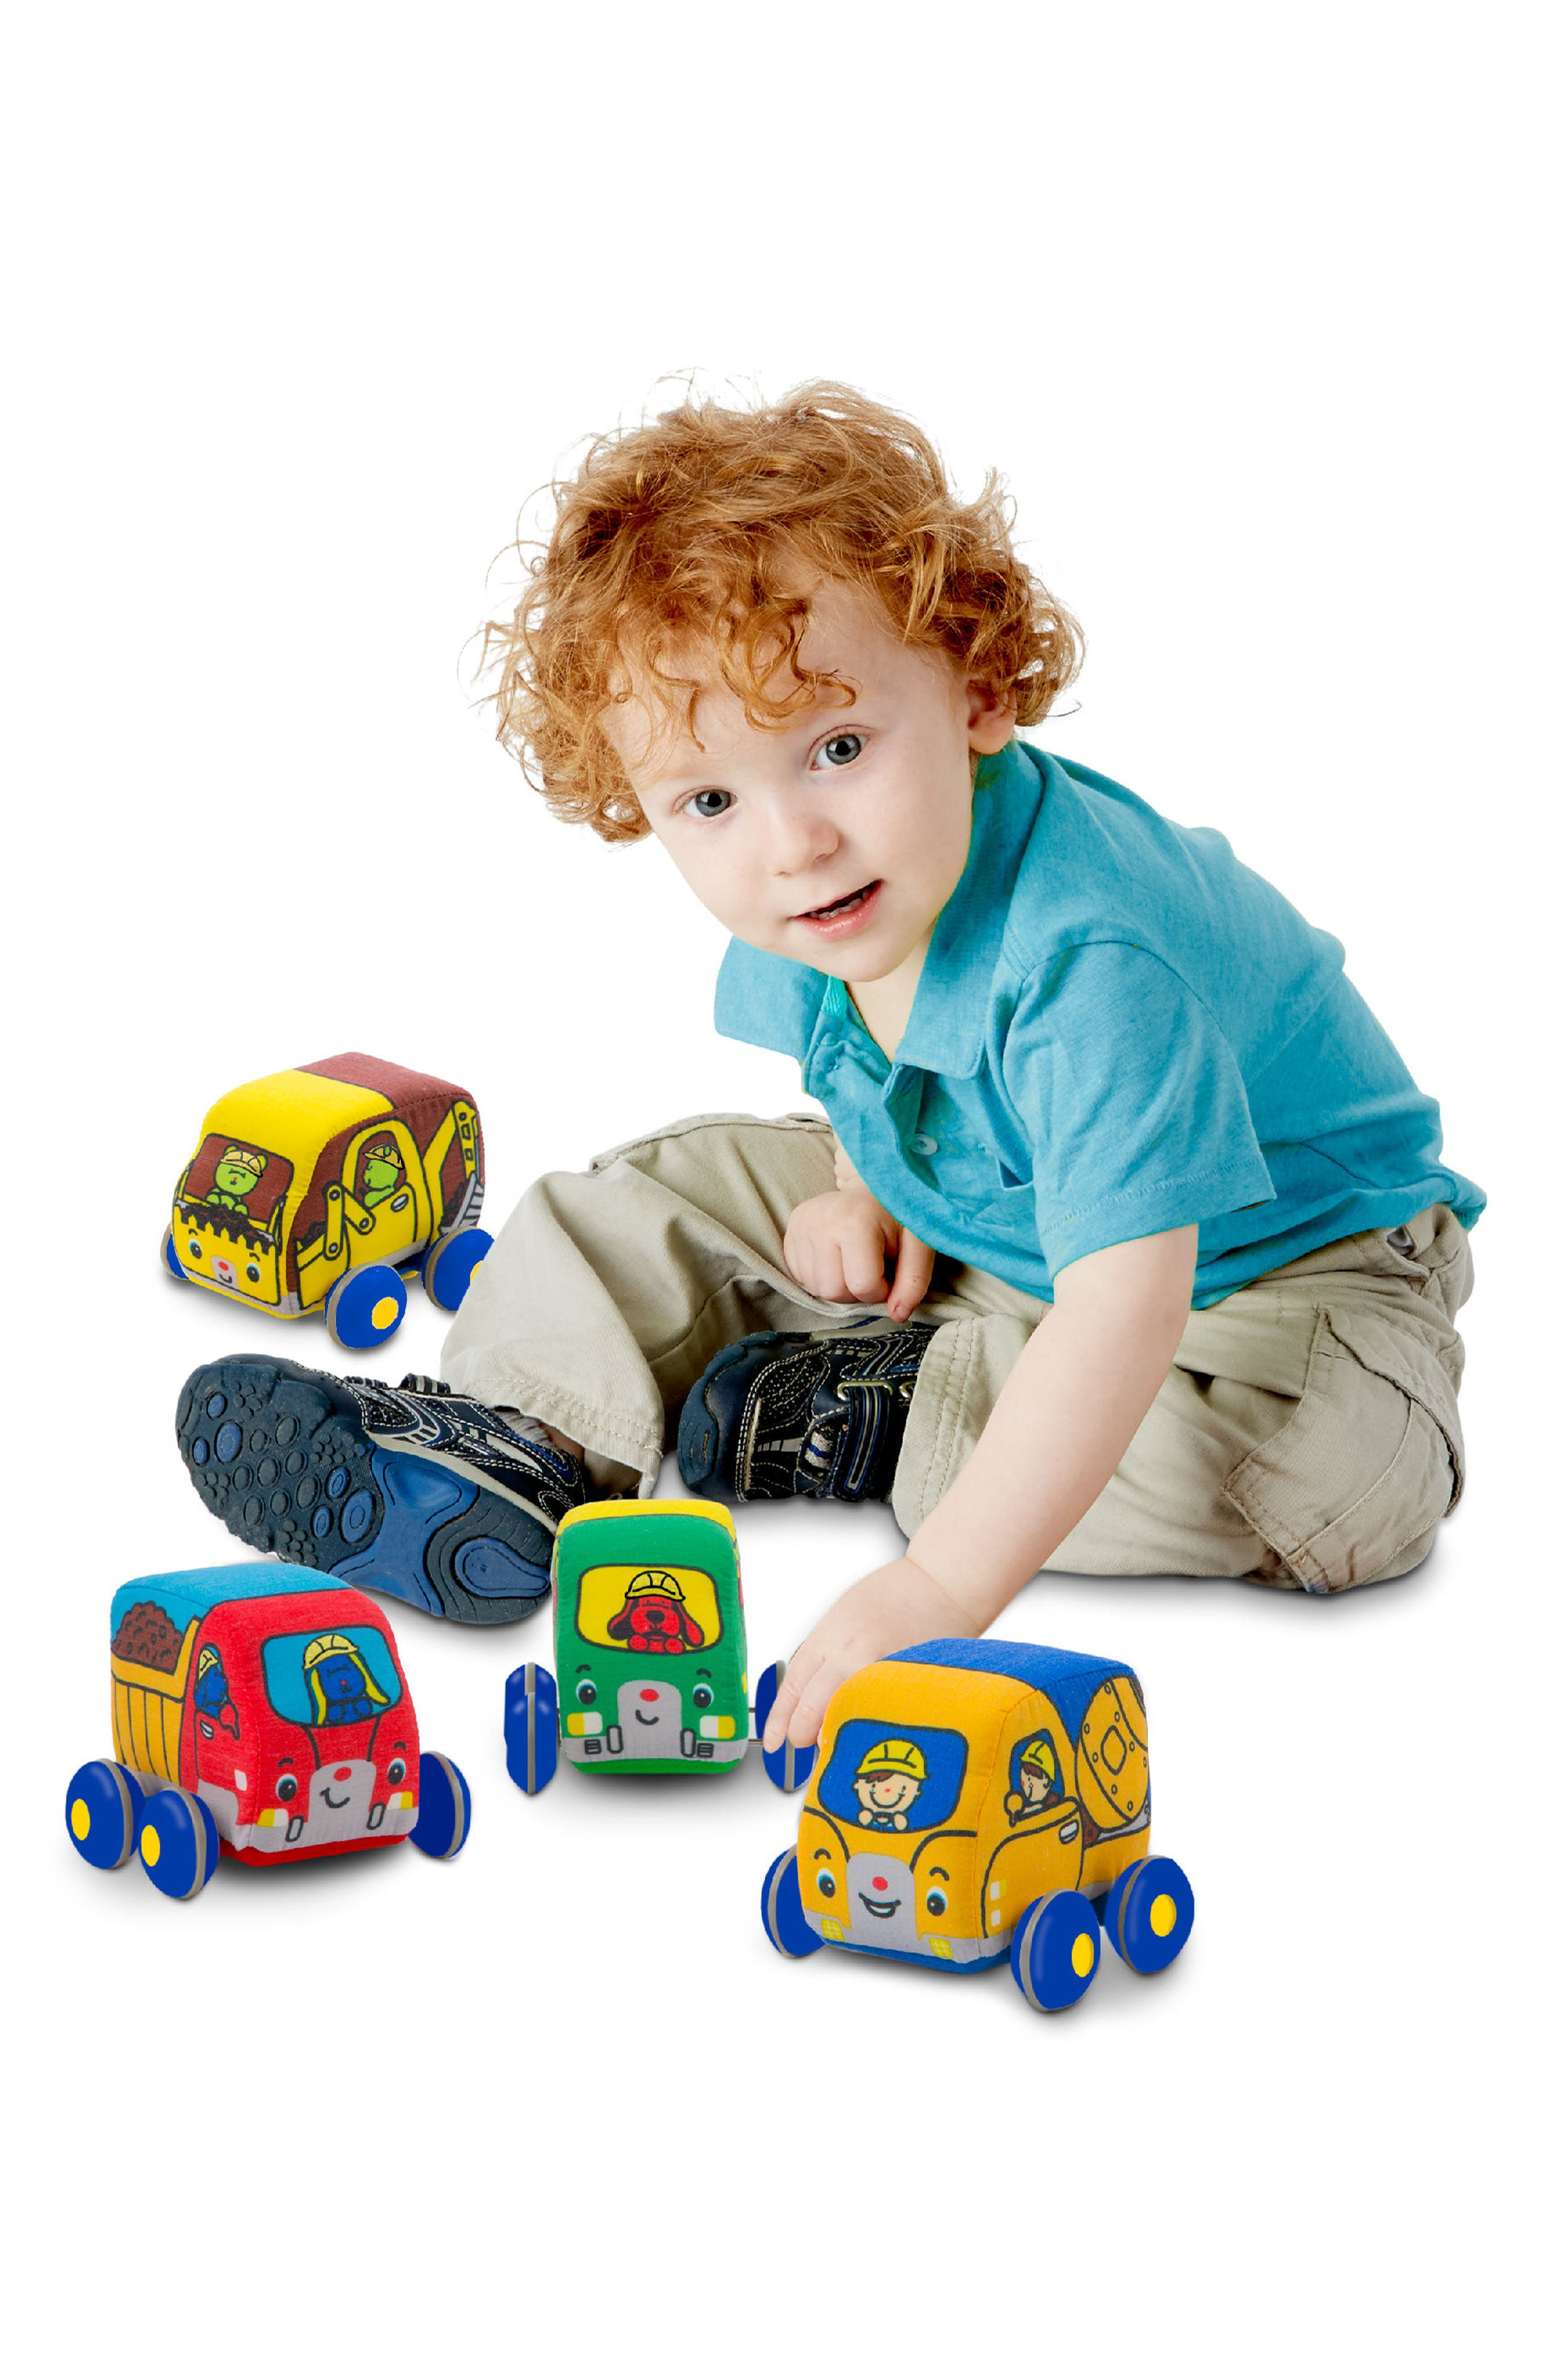 4-Pack Pull Back Construction Vehicle Play Set,                             Alternate thumbnail 3, color,                             700